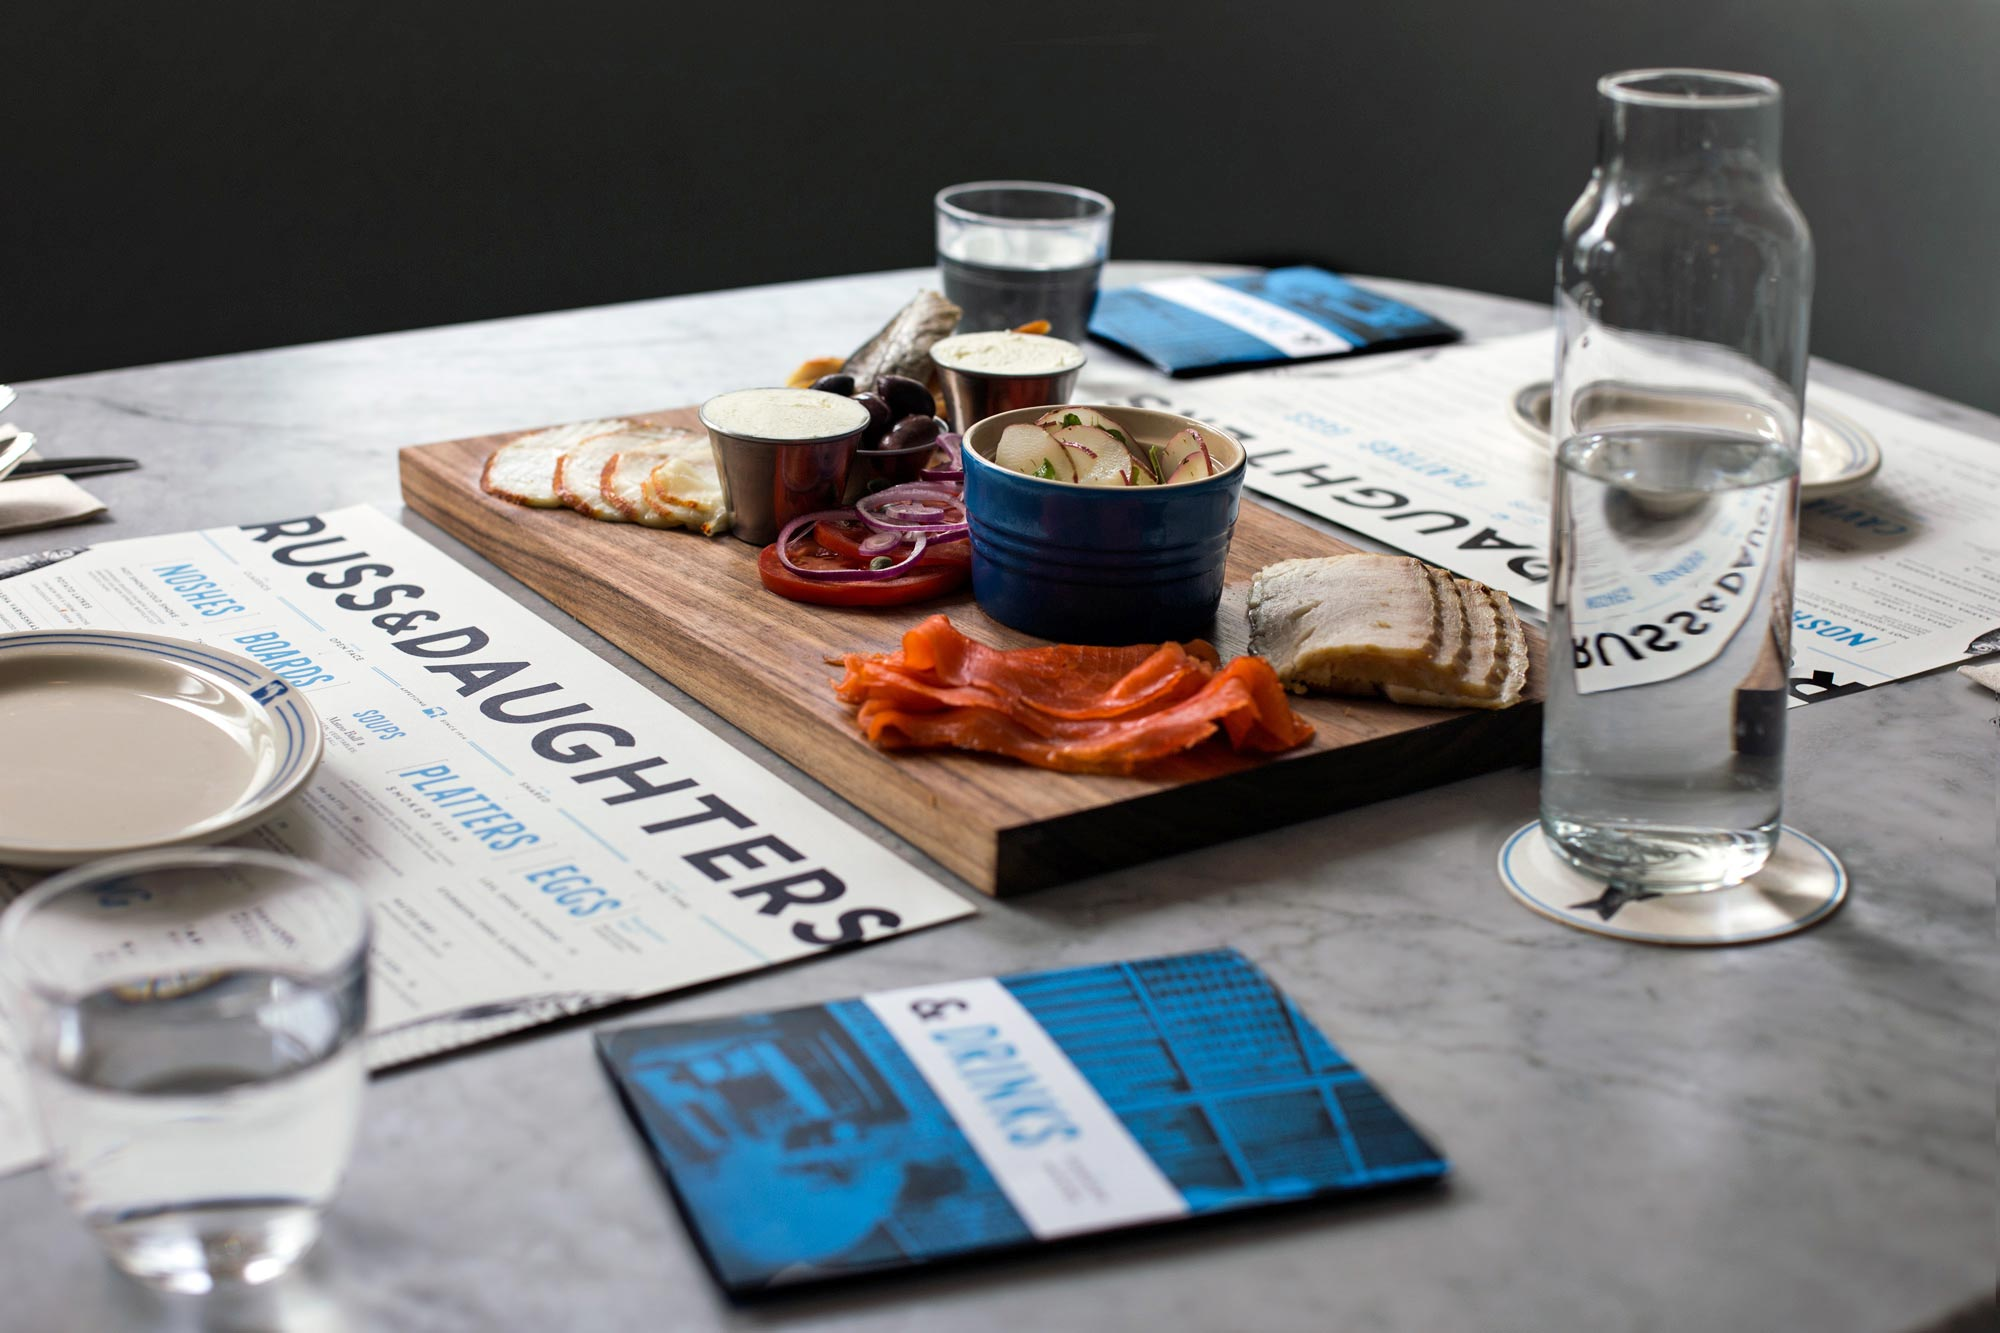 Russ & Daughters restaurant rebranding and design by Kelli Anderson